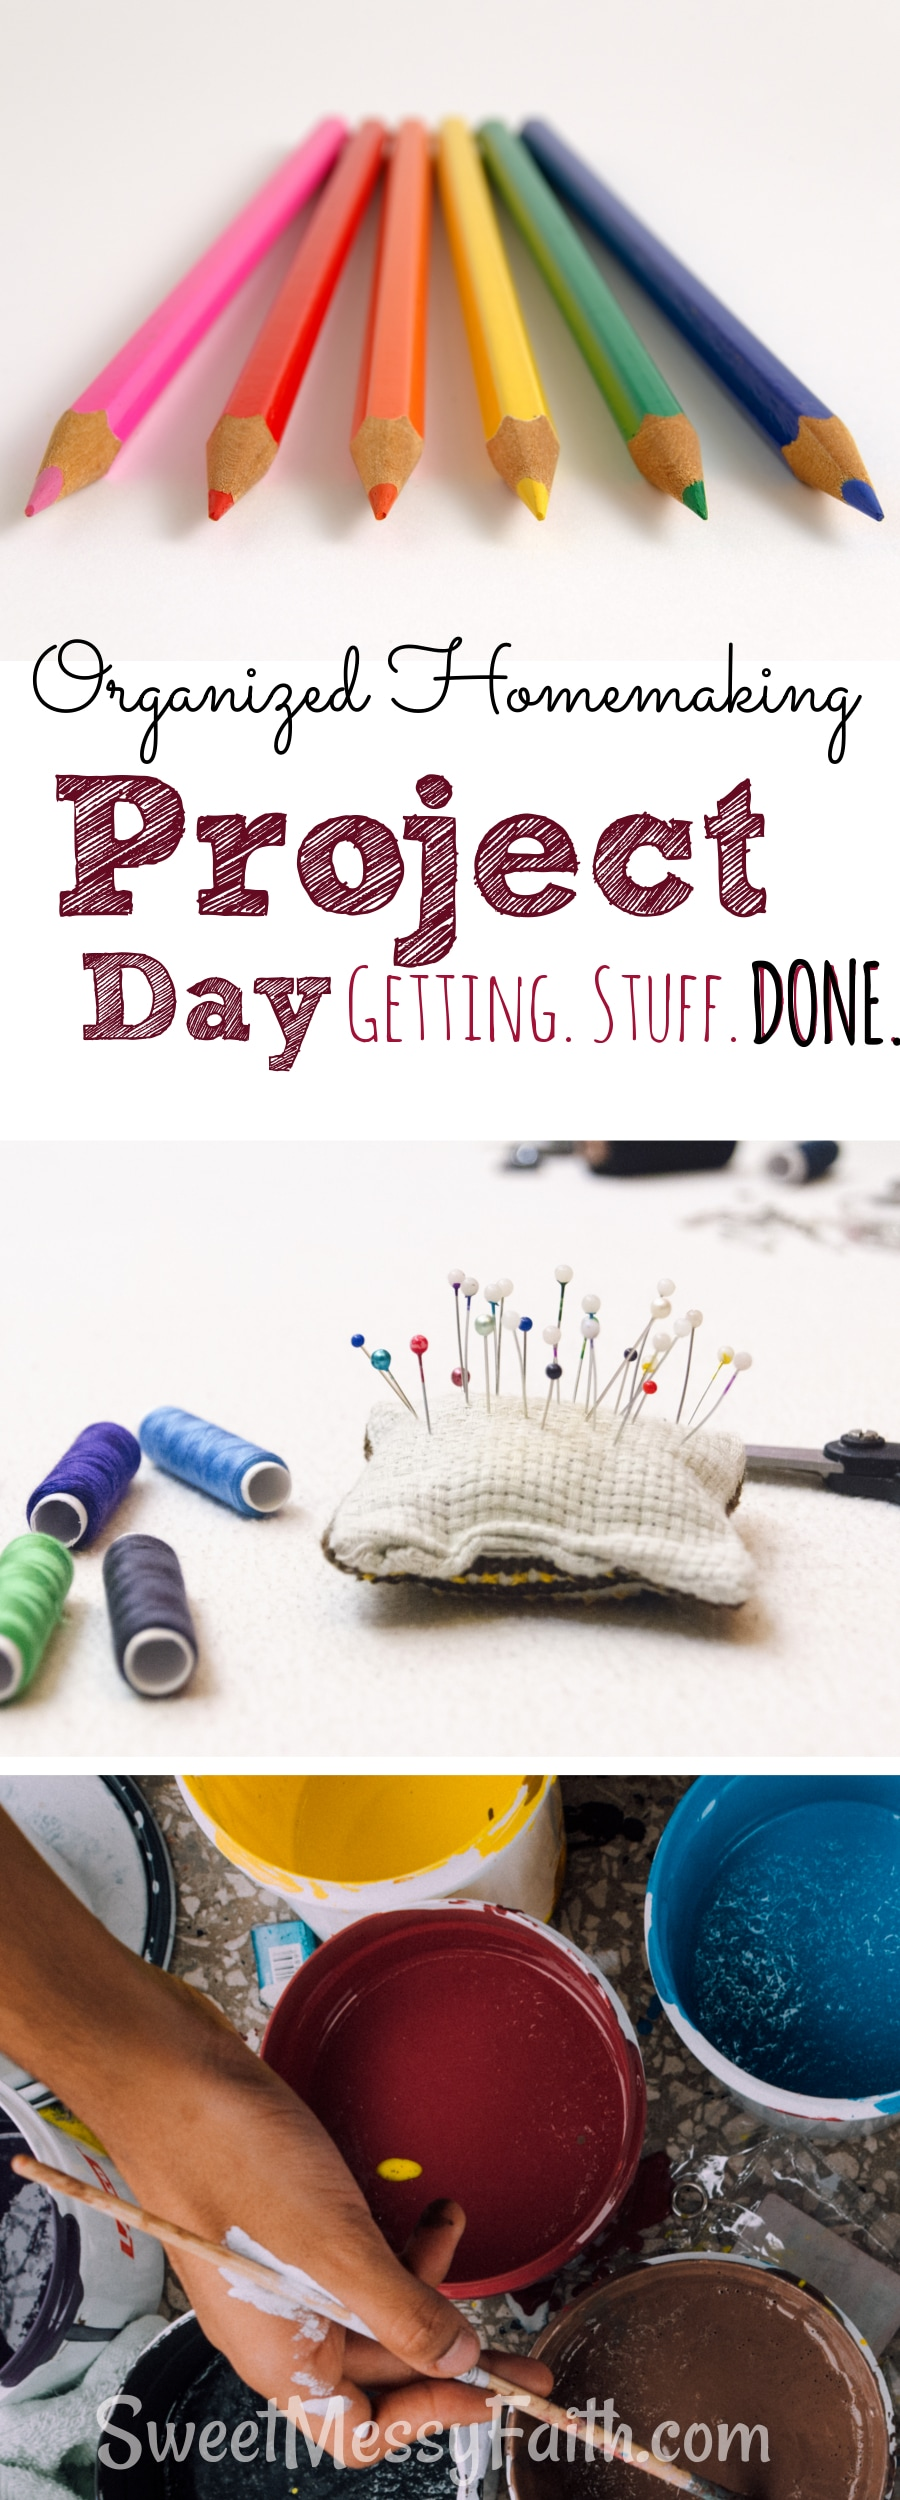 Project Day: The secret to getting stuff done.